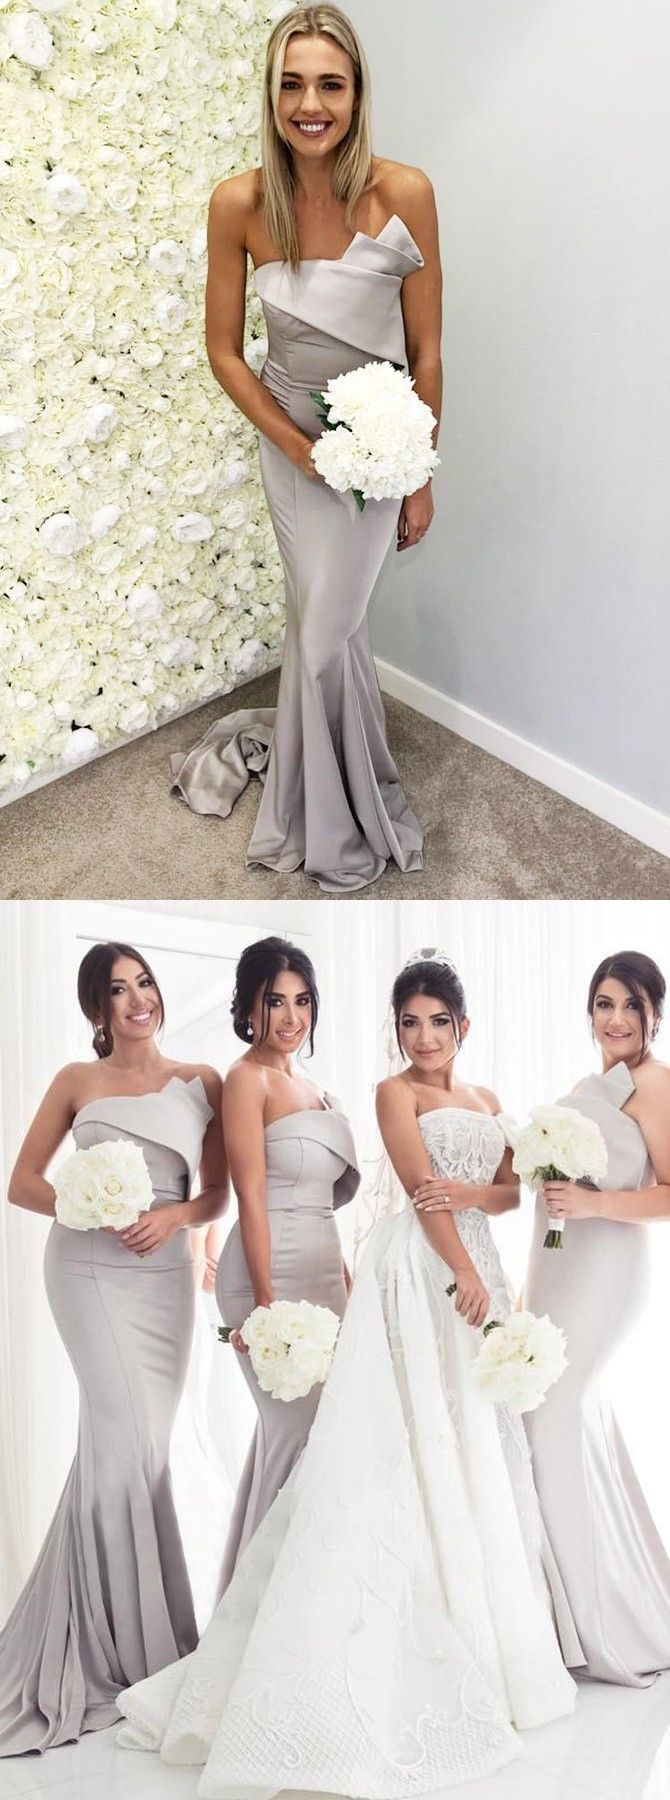 Mermaid strapless sweep train grey satin bridesmaid dress in